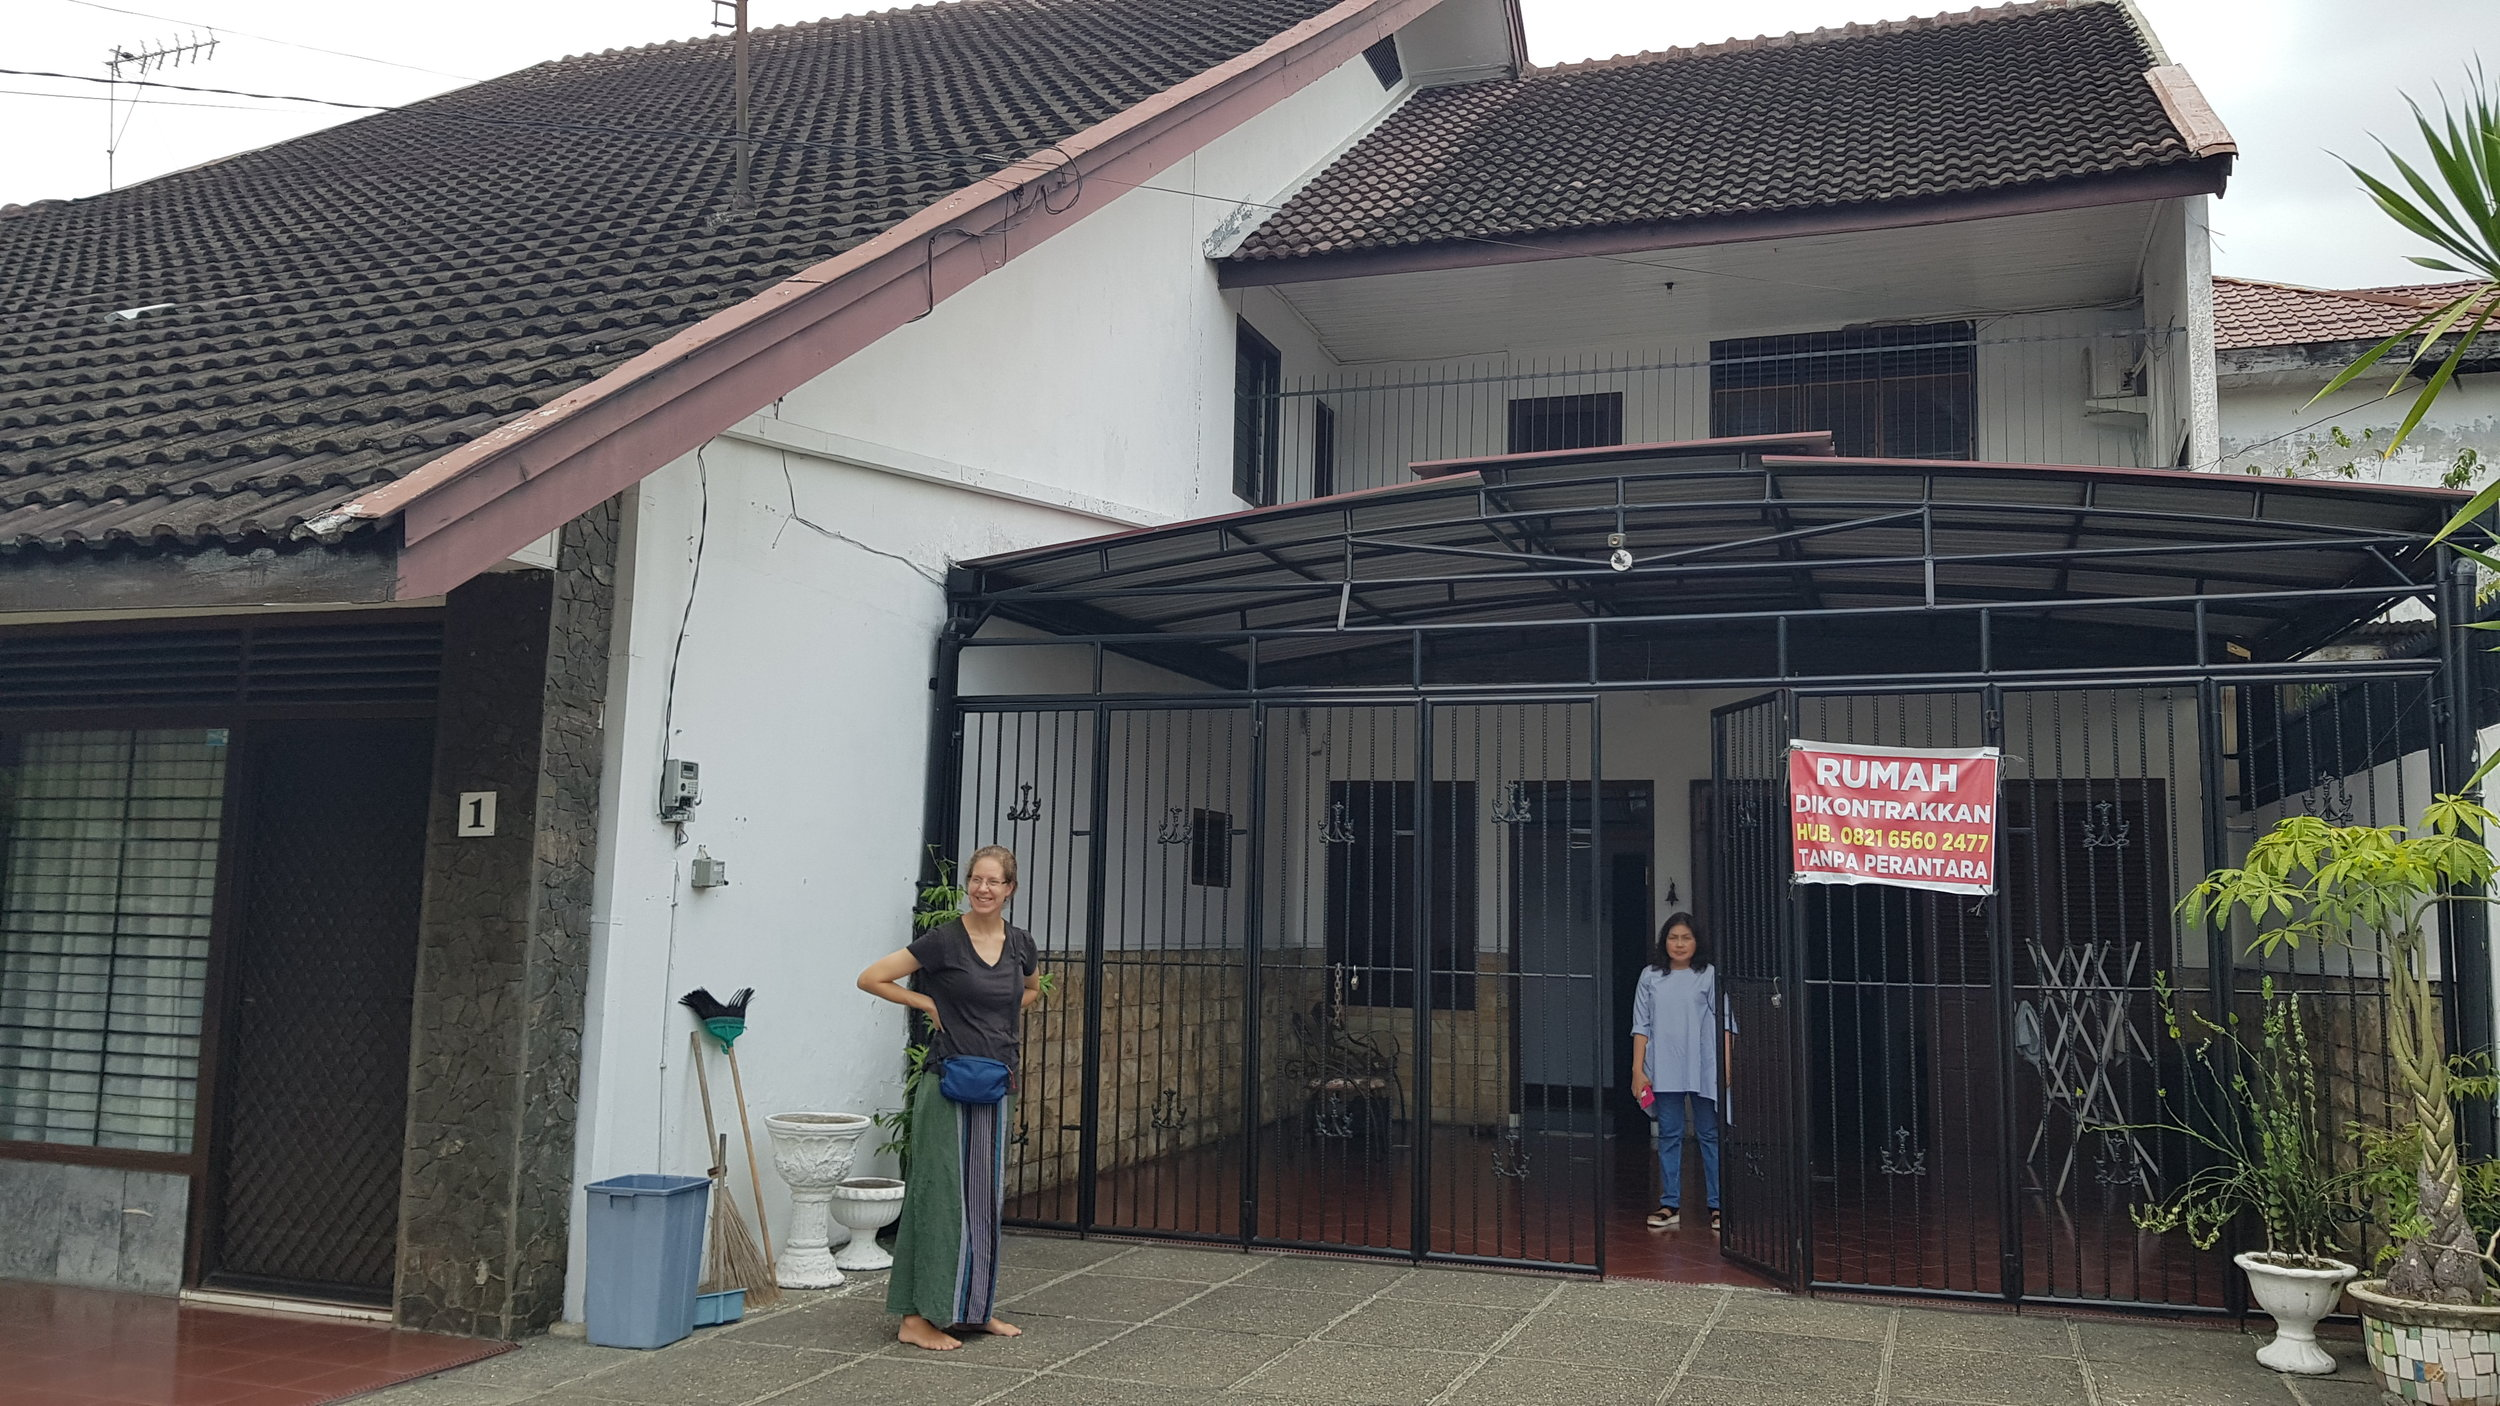 This is our home in Medan. Pictured on the right is Cheryl Ferry who lived here previously. Behind the gate is Ibu (Mrs.) Nana our land lord.